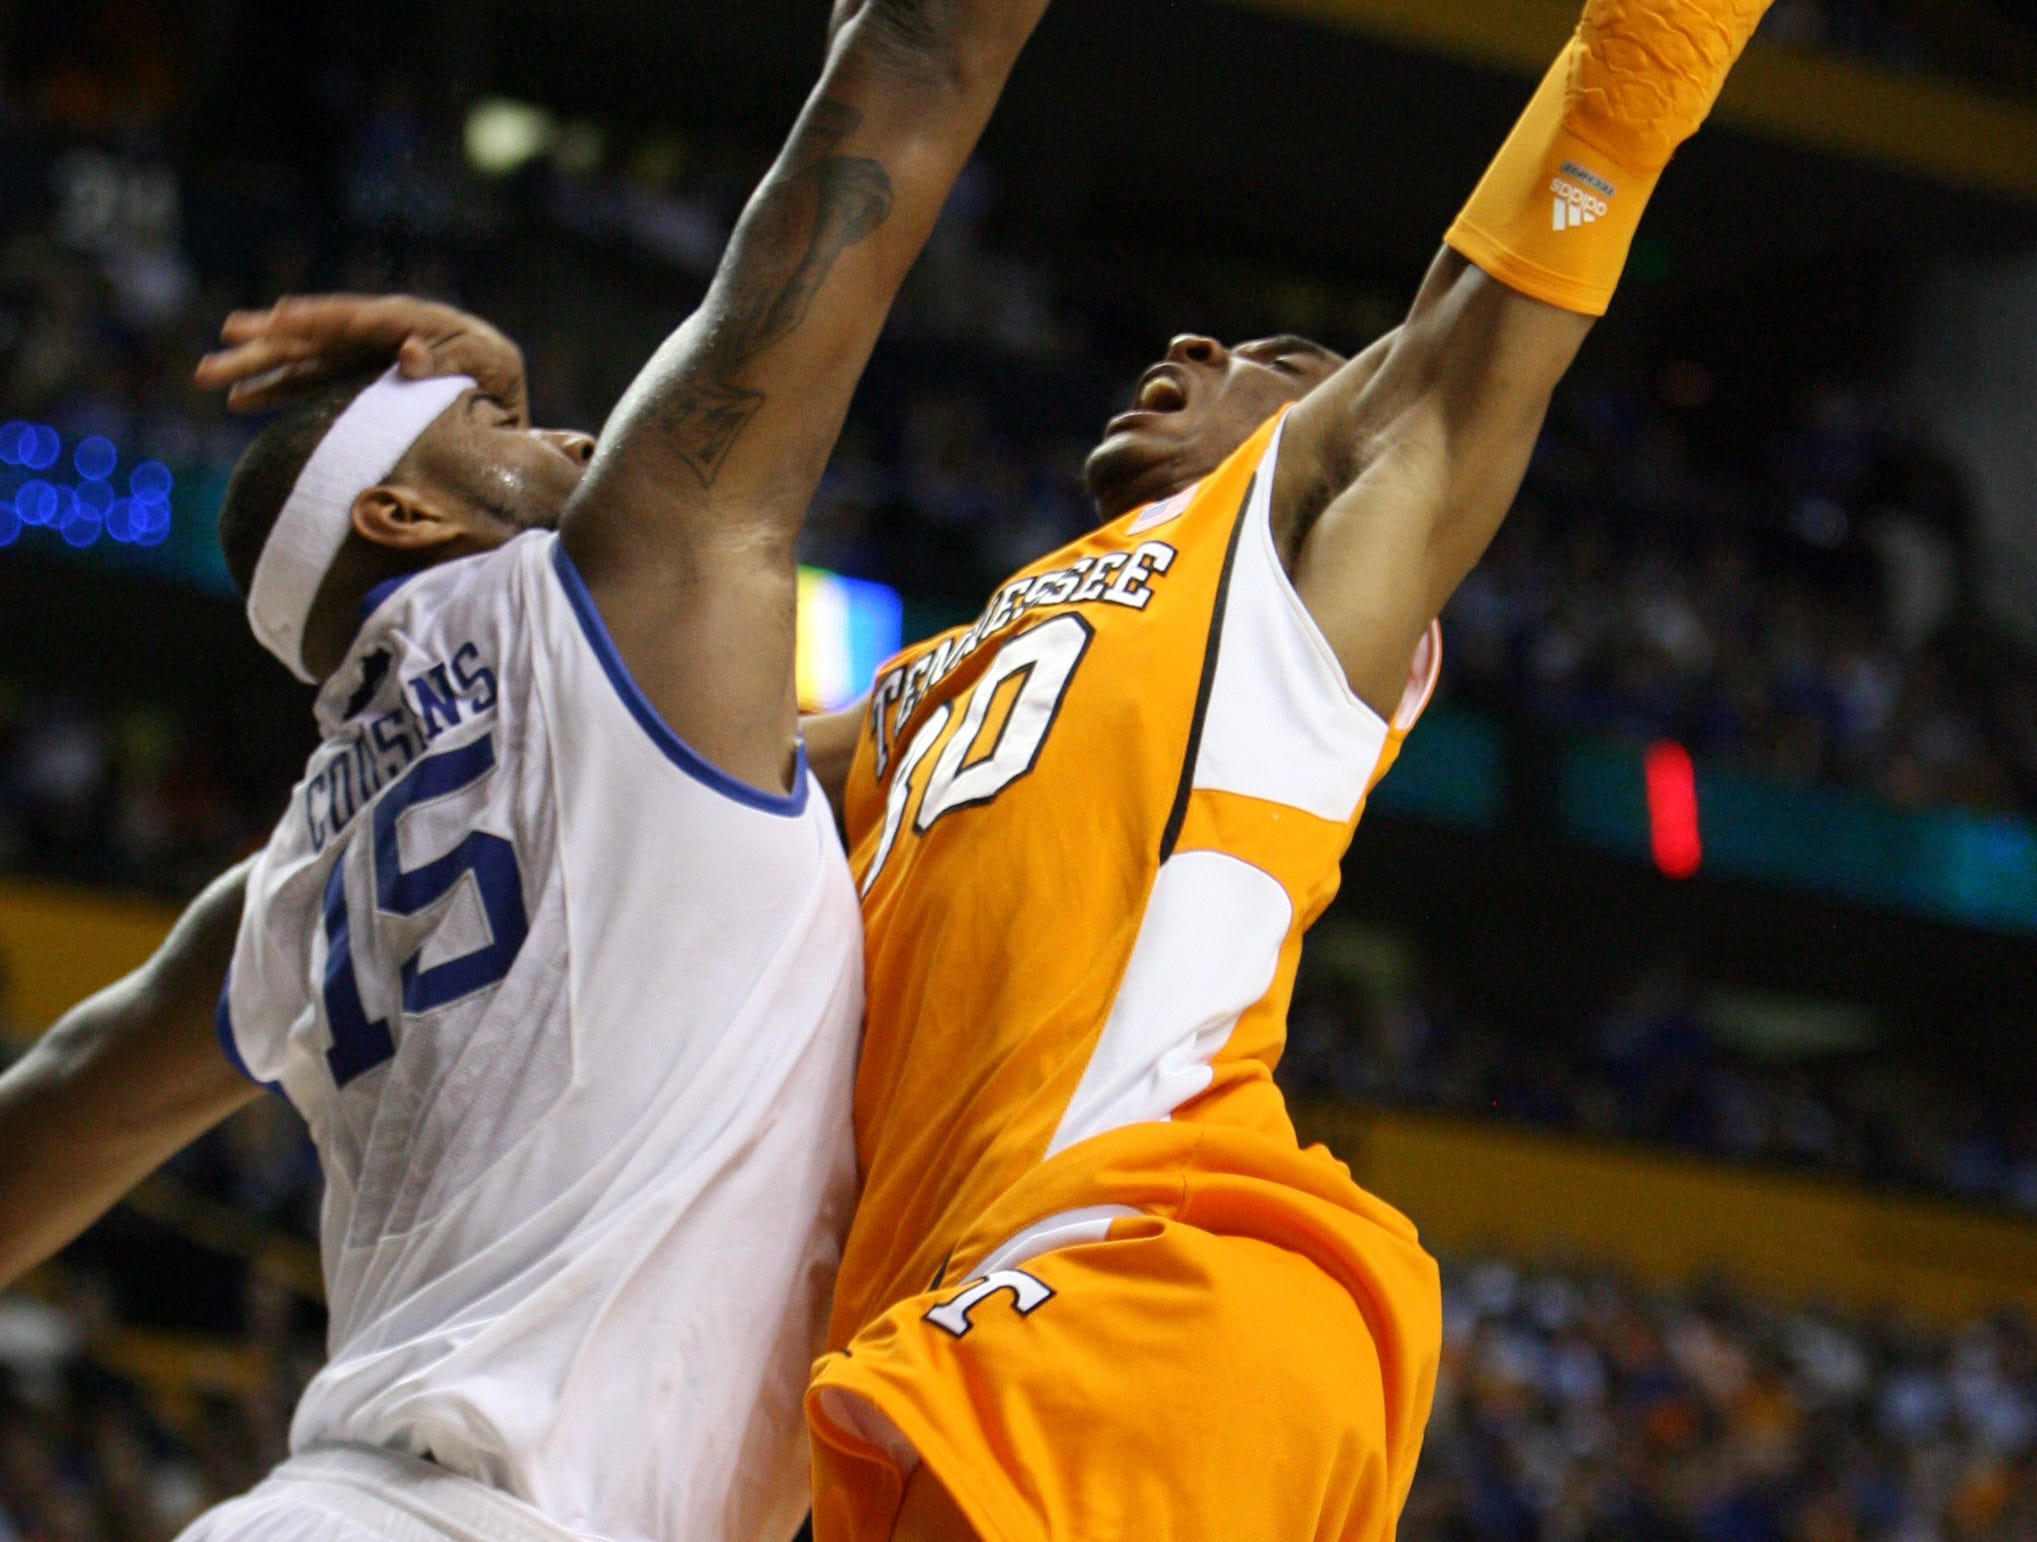 Tennessee's J.P. Prince tries to shoot over Kentucky's DeMarcus Cousins during the SEC Men's Basketball Tournament at Bridgestone Arena in Nashville Saturday, Mar. 13, 2010.  Prince scored 6 points for the Vols.